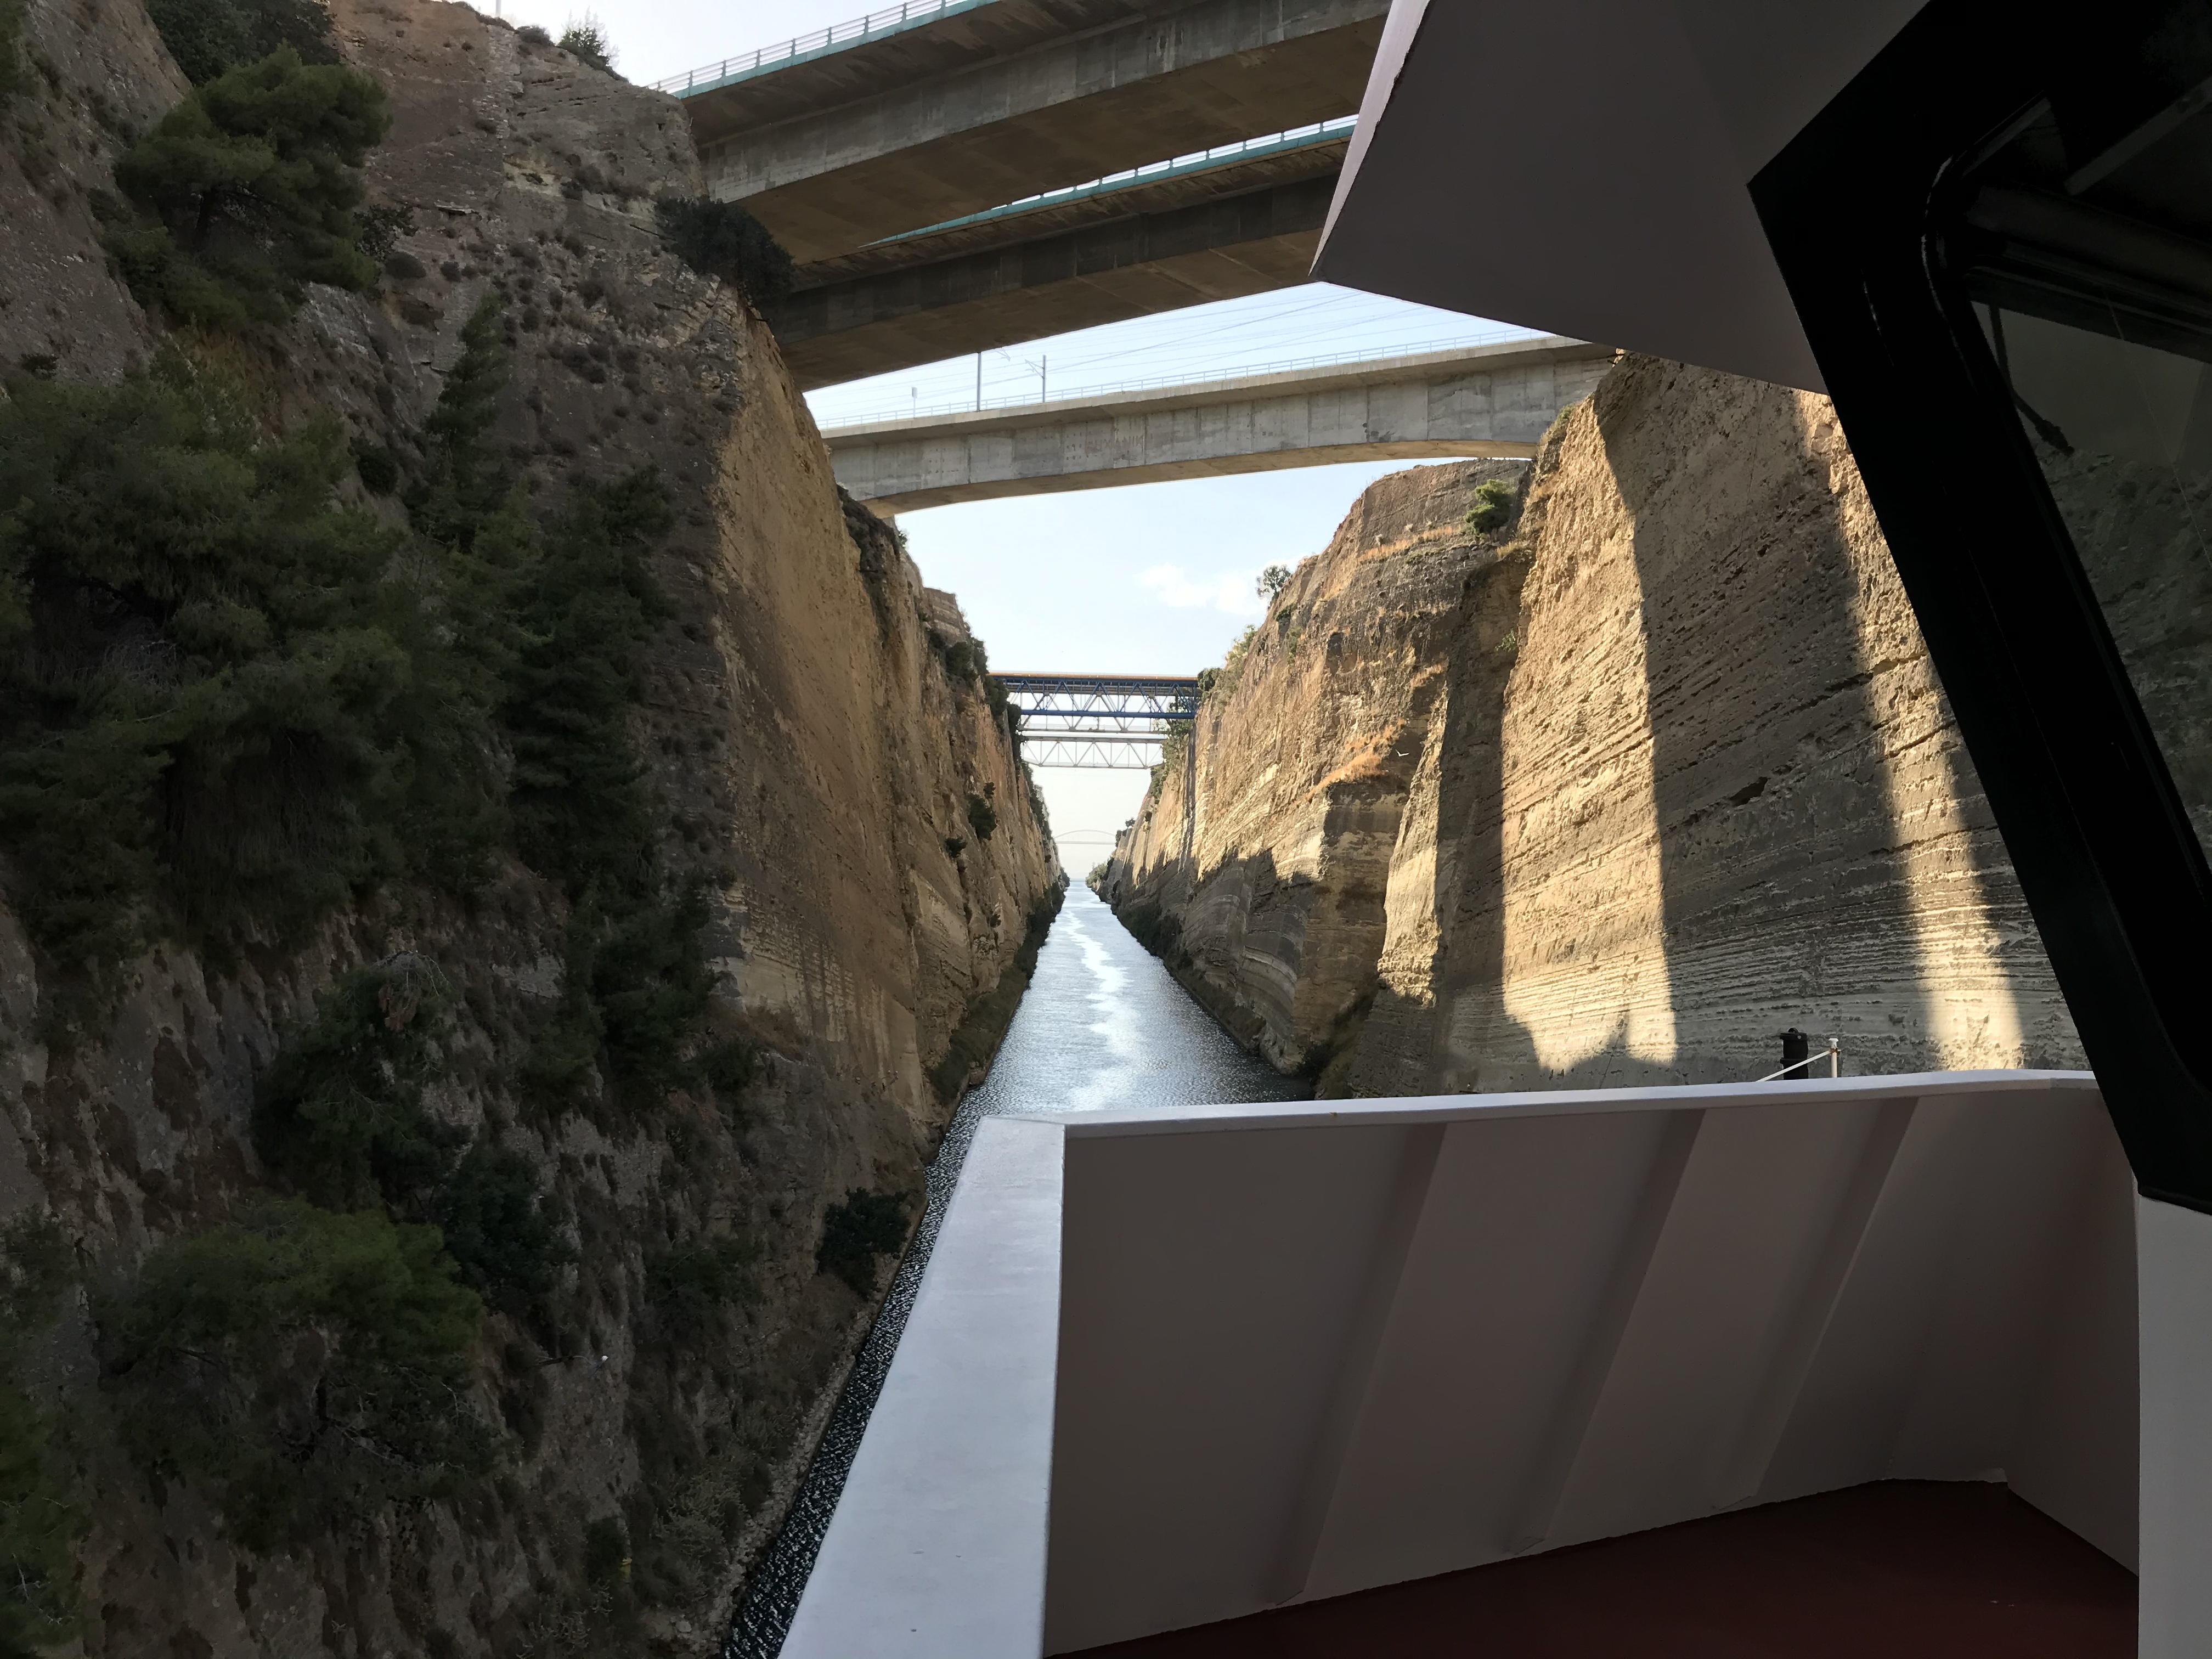 Eemslift Hendrika at Corinth Canal